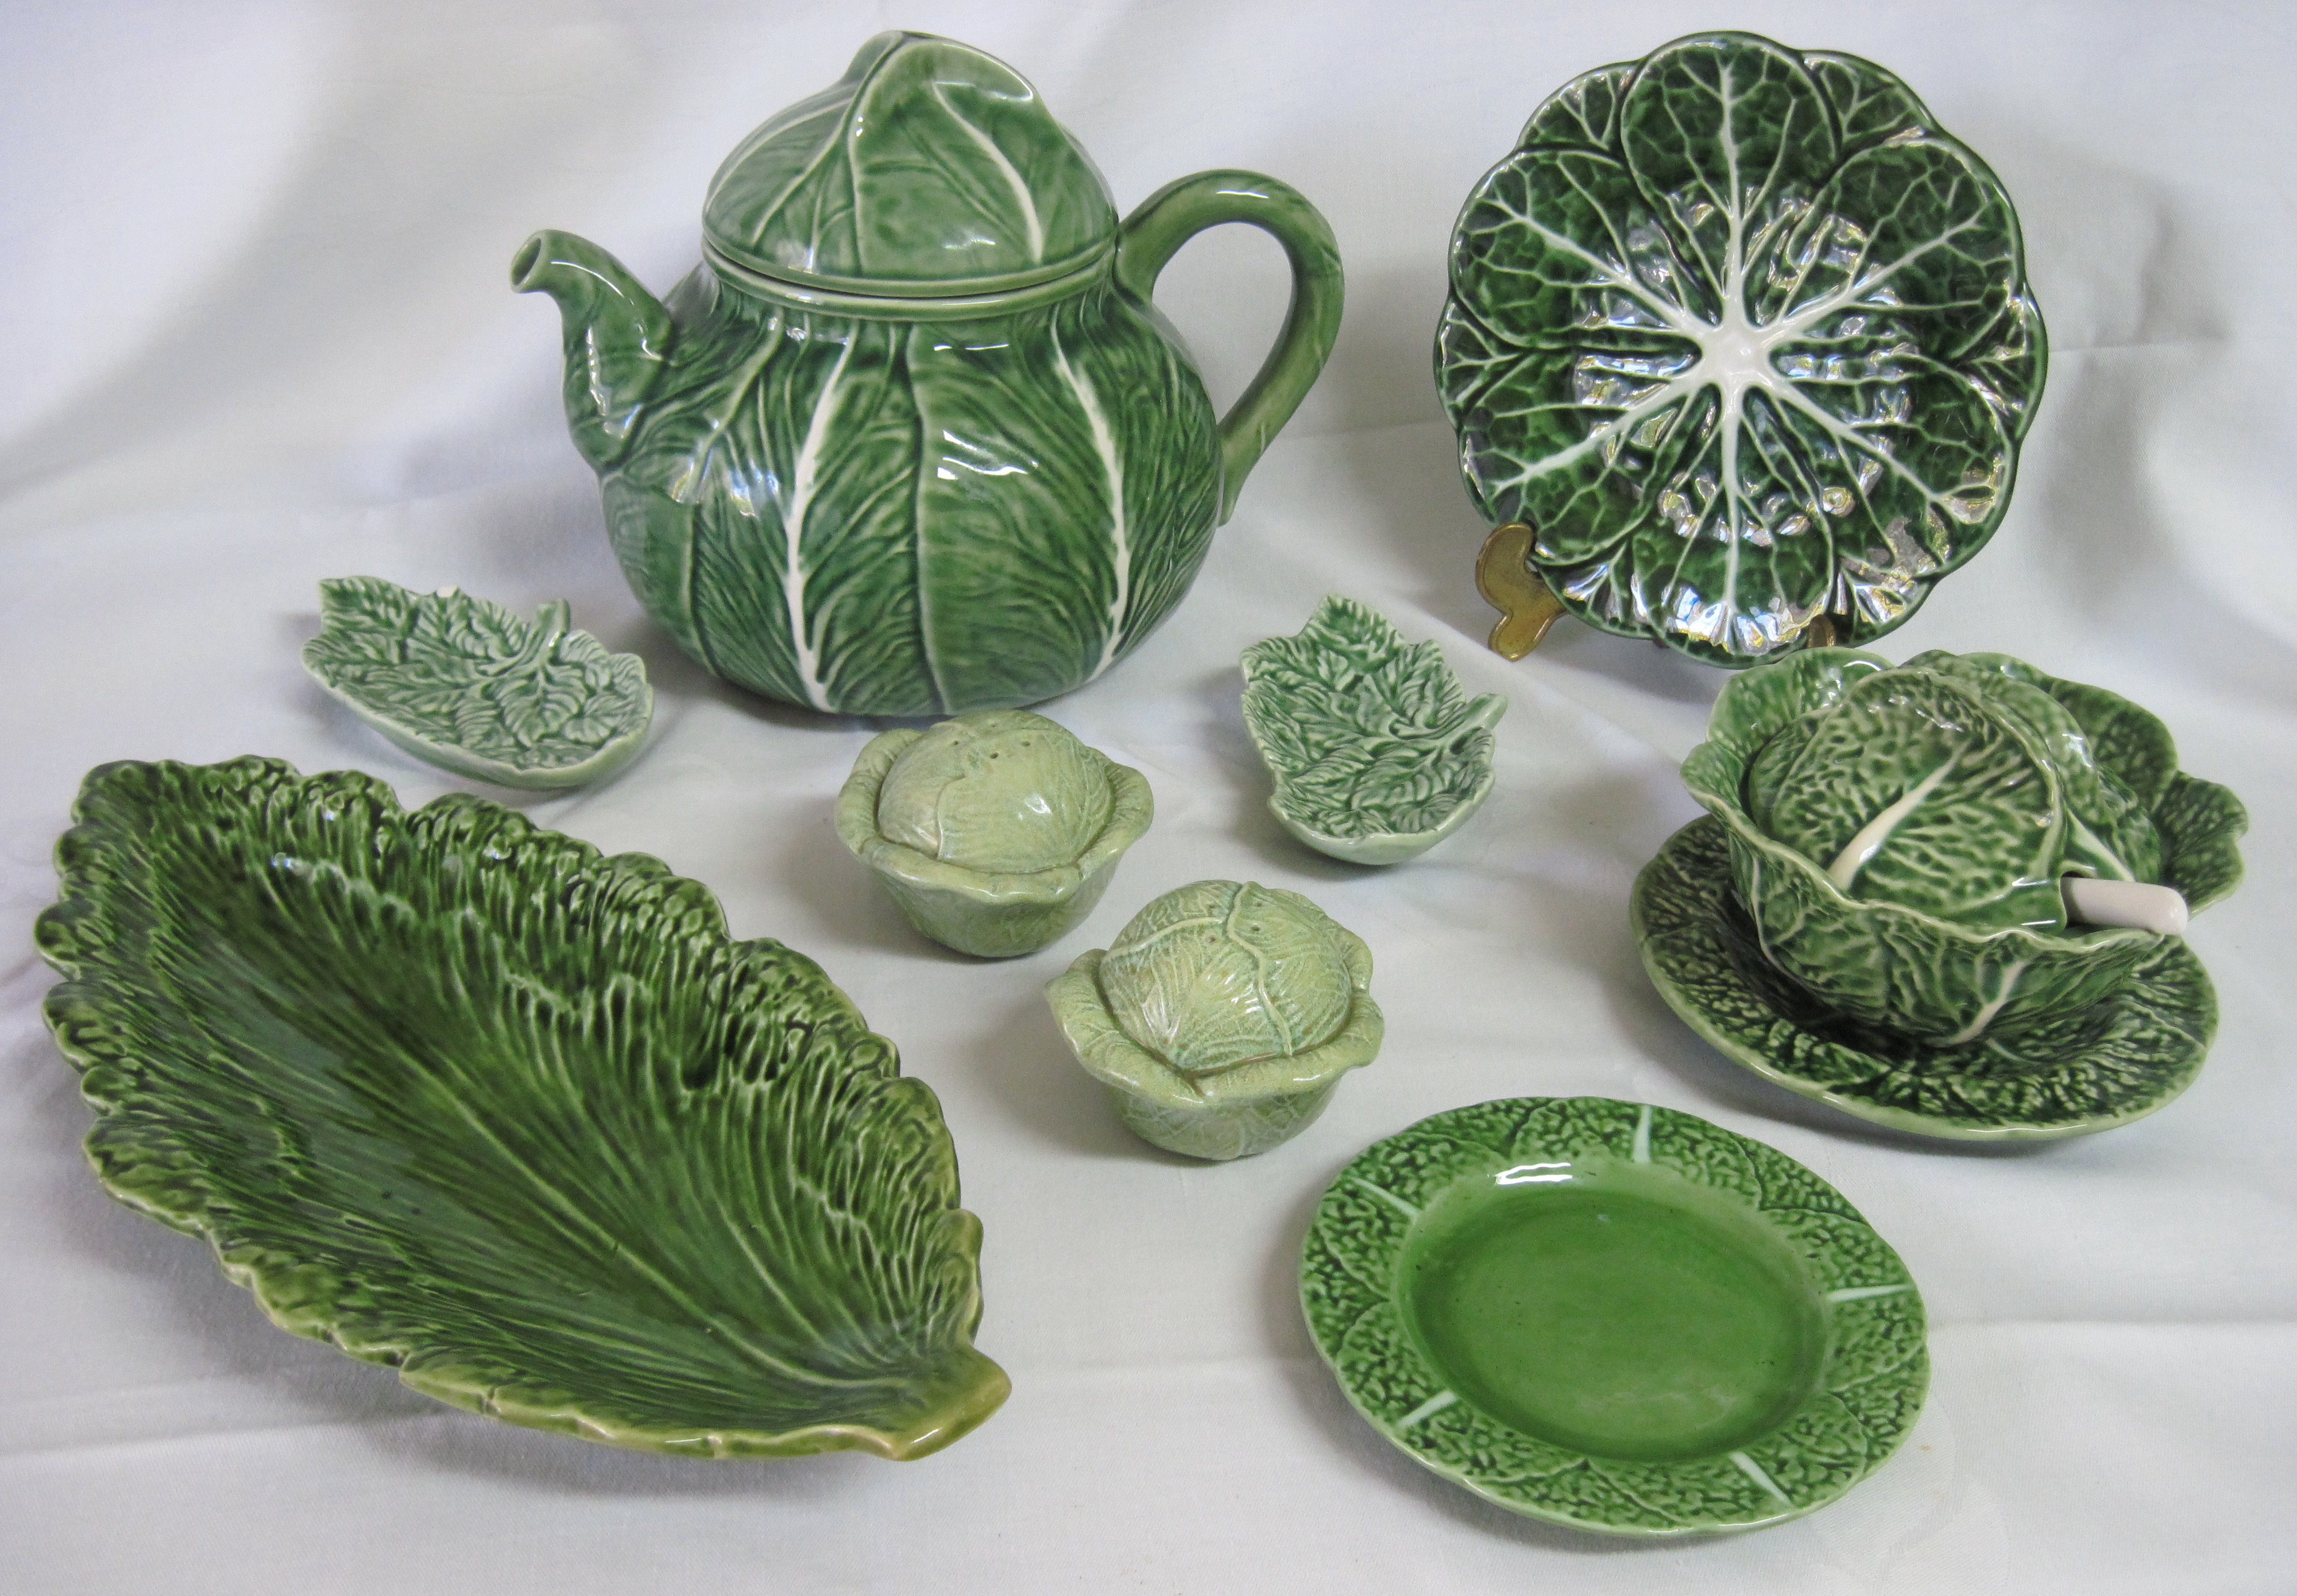 From ... & Pretty Cabbage Pottery | fabfindsblog